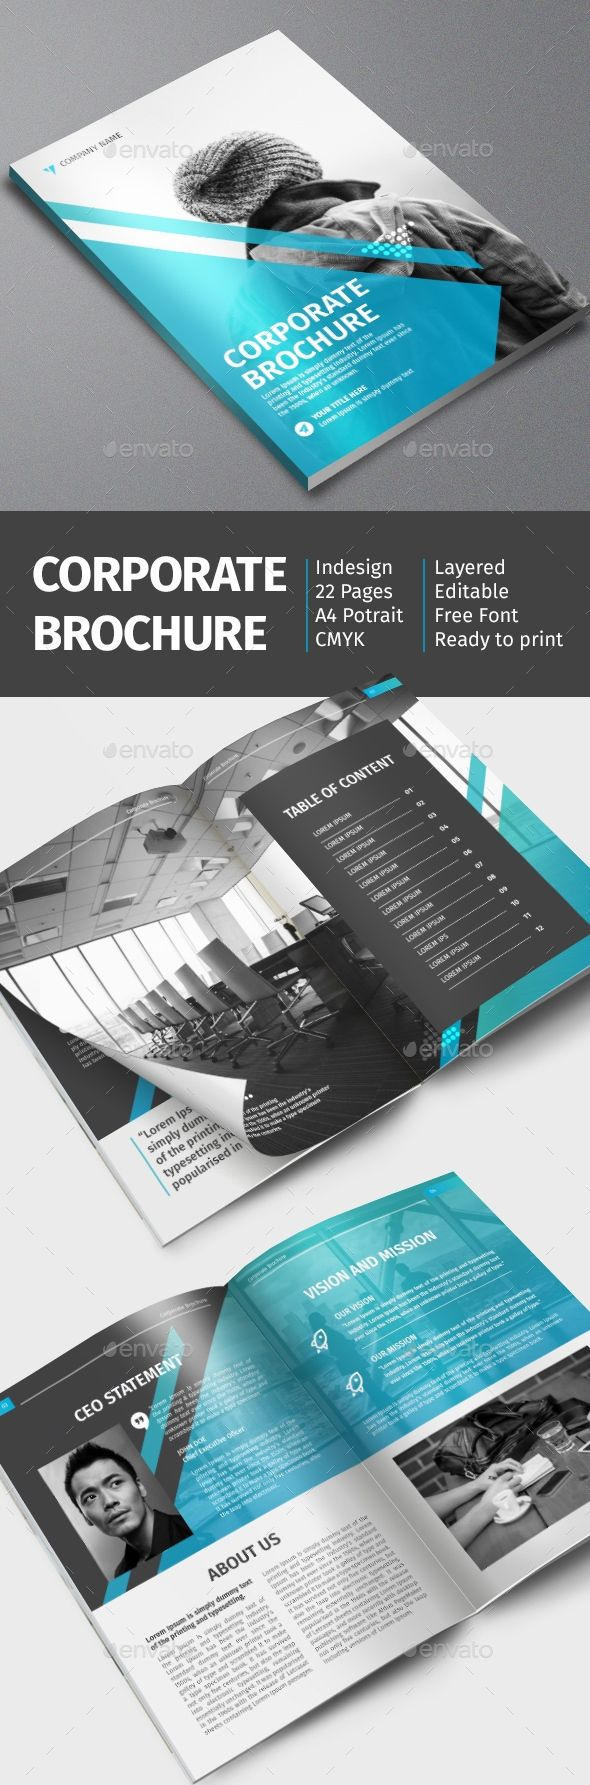 Corporate Brochure Company Profile 7                                                                                                                                                     More